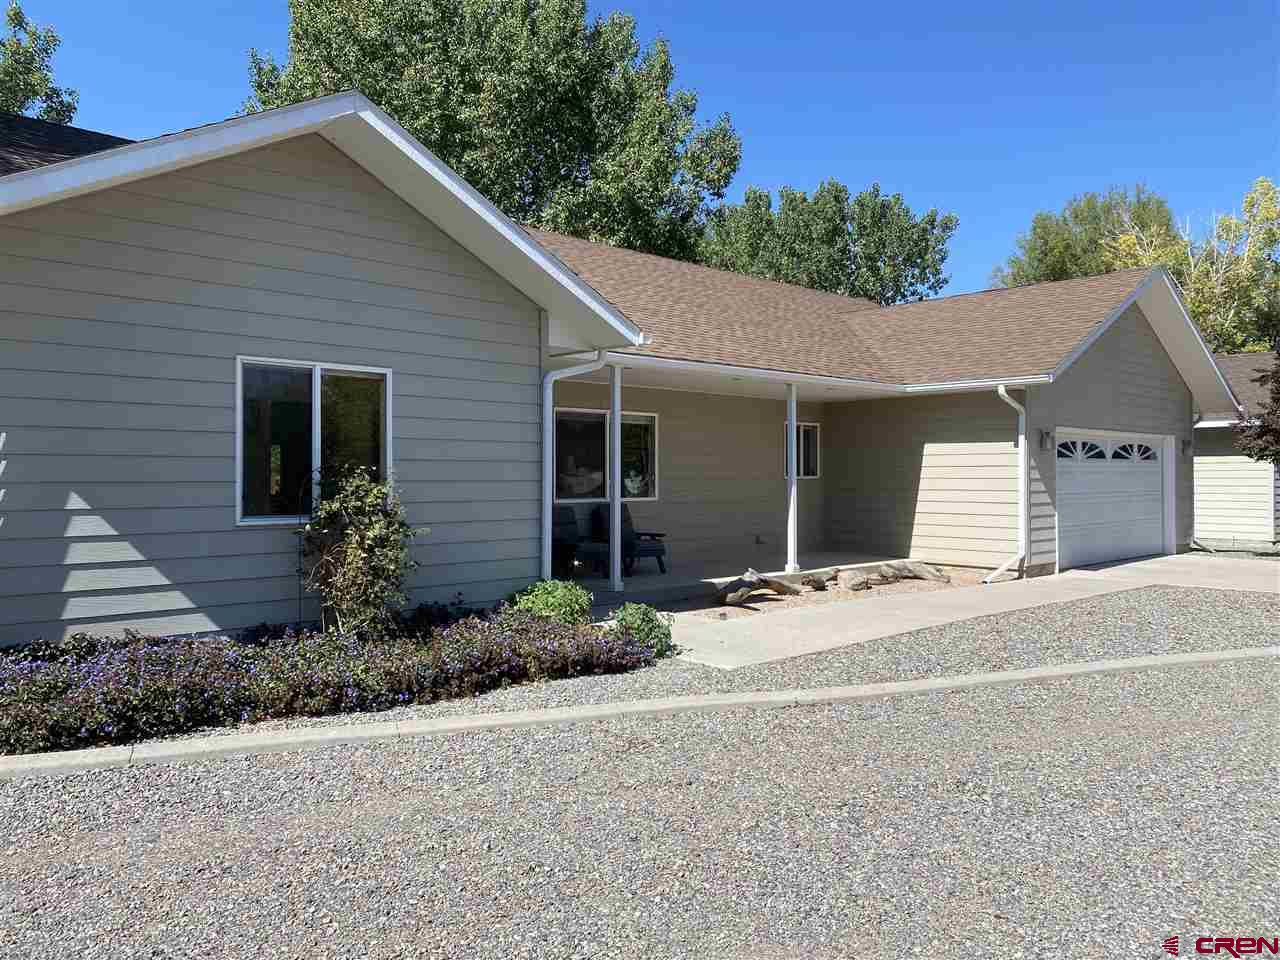 You must see this beautiful home before its gone! It is located in the exclusive neighborhood of Cactus Creek Subdivision on 1.4 acres with irrigation water. The last time a home sold in this neighborhood was in 2018! This home is very bright, clean, spacious and very well maintained. Floor plan features a split plan with the Master Suite on one side and two bedrooms on the other. The covered patio is perfect for afternoon BBQ's or morning coffee while staring at your San Juan and Cimarron mountain views. Enjoy the gorgeous, very large, dream backyard that has been immaculately maintained. There is plenty of room to park your toys and RV's. Schedule your showing before it's too late.